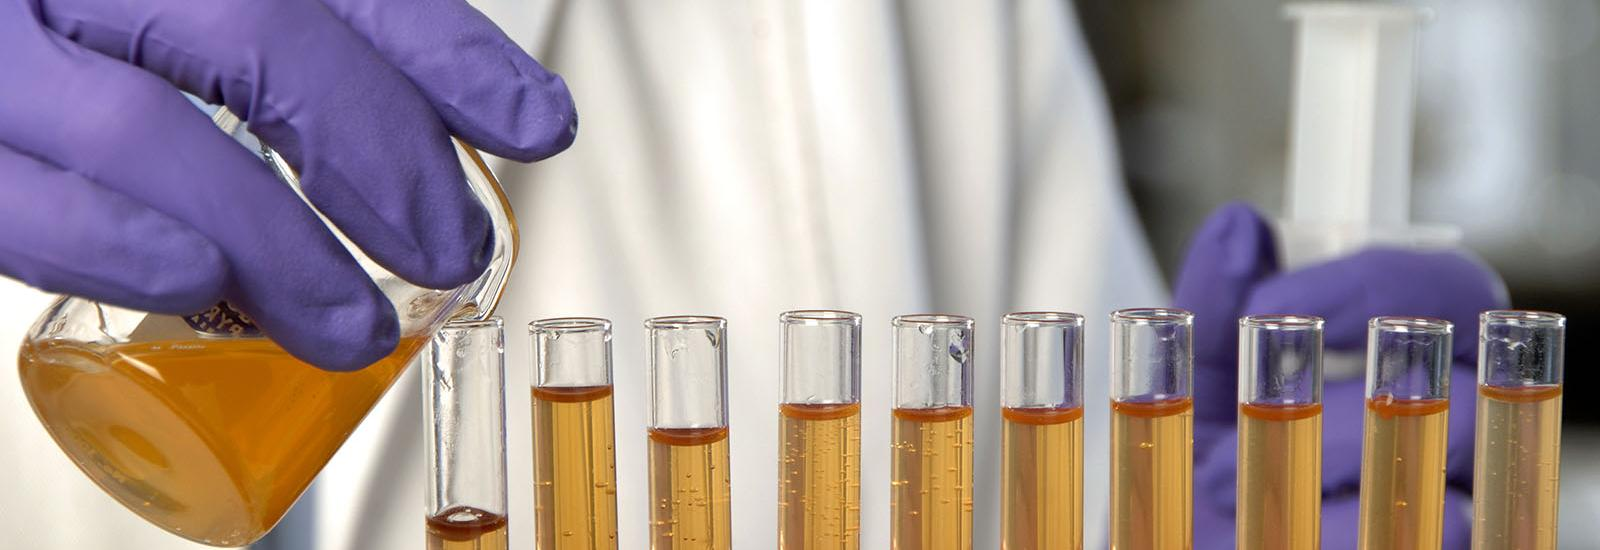 Photograph of scientist pouring colored liquid into row of test tubes.